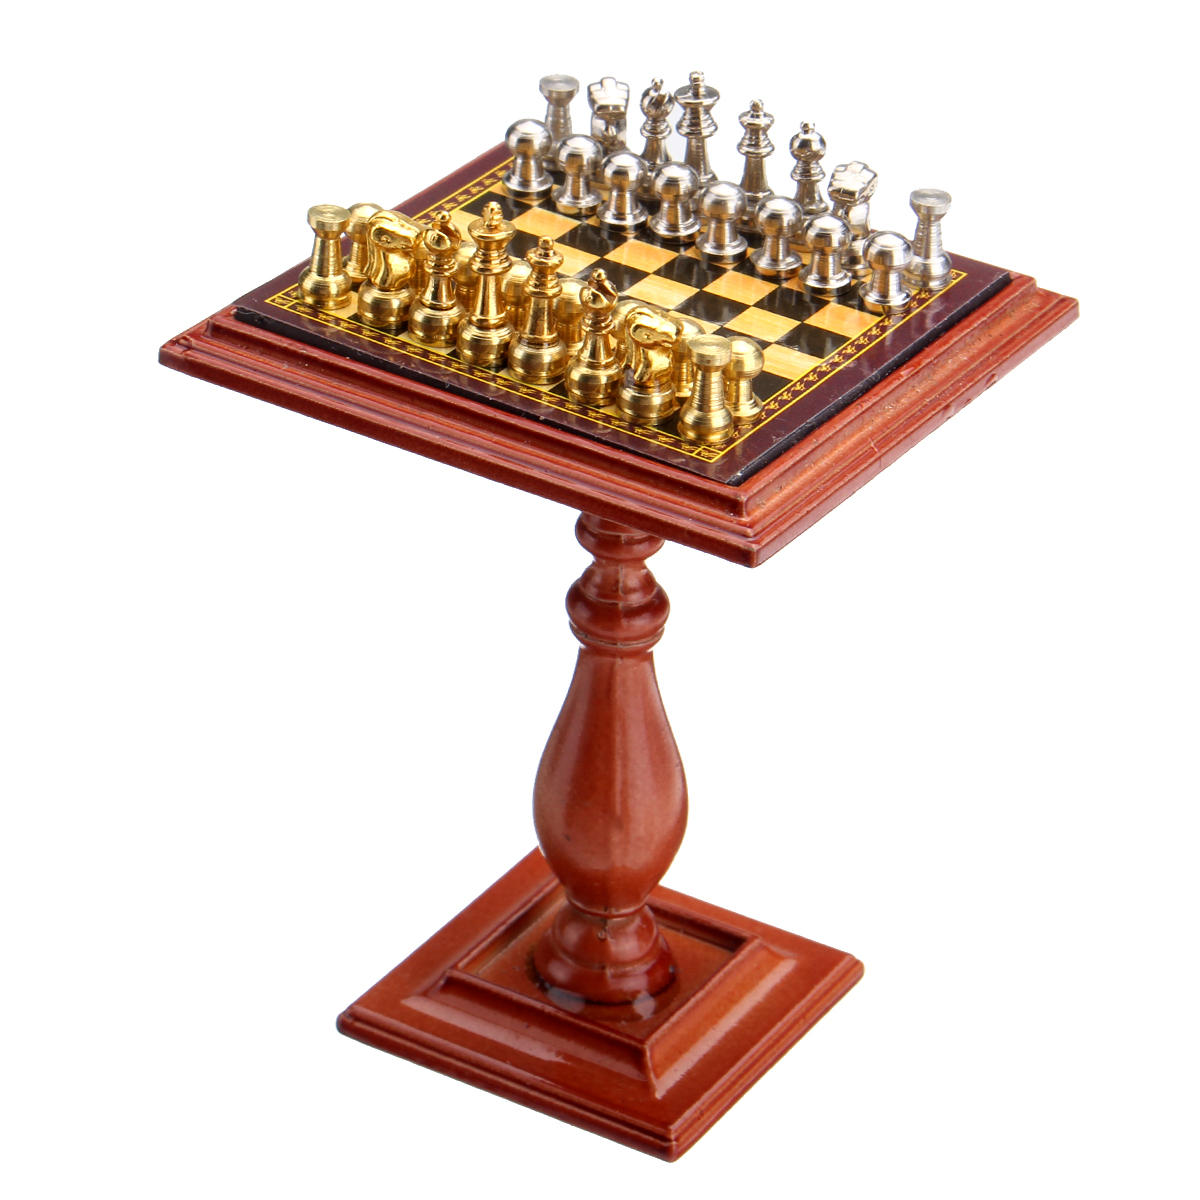 Miniature Chess Set and Table Magnet Chess Pieces 1:12 Dollhouse  Accessories Parts For Doll House